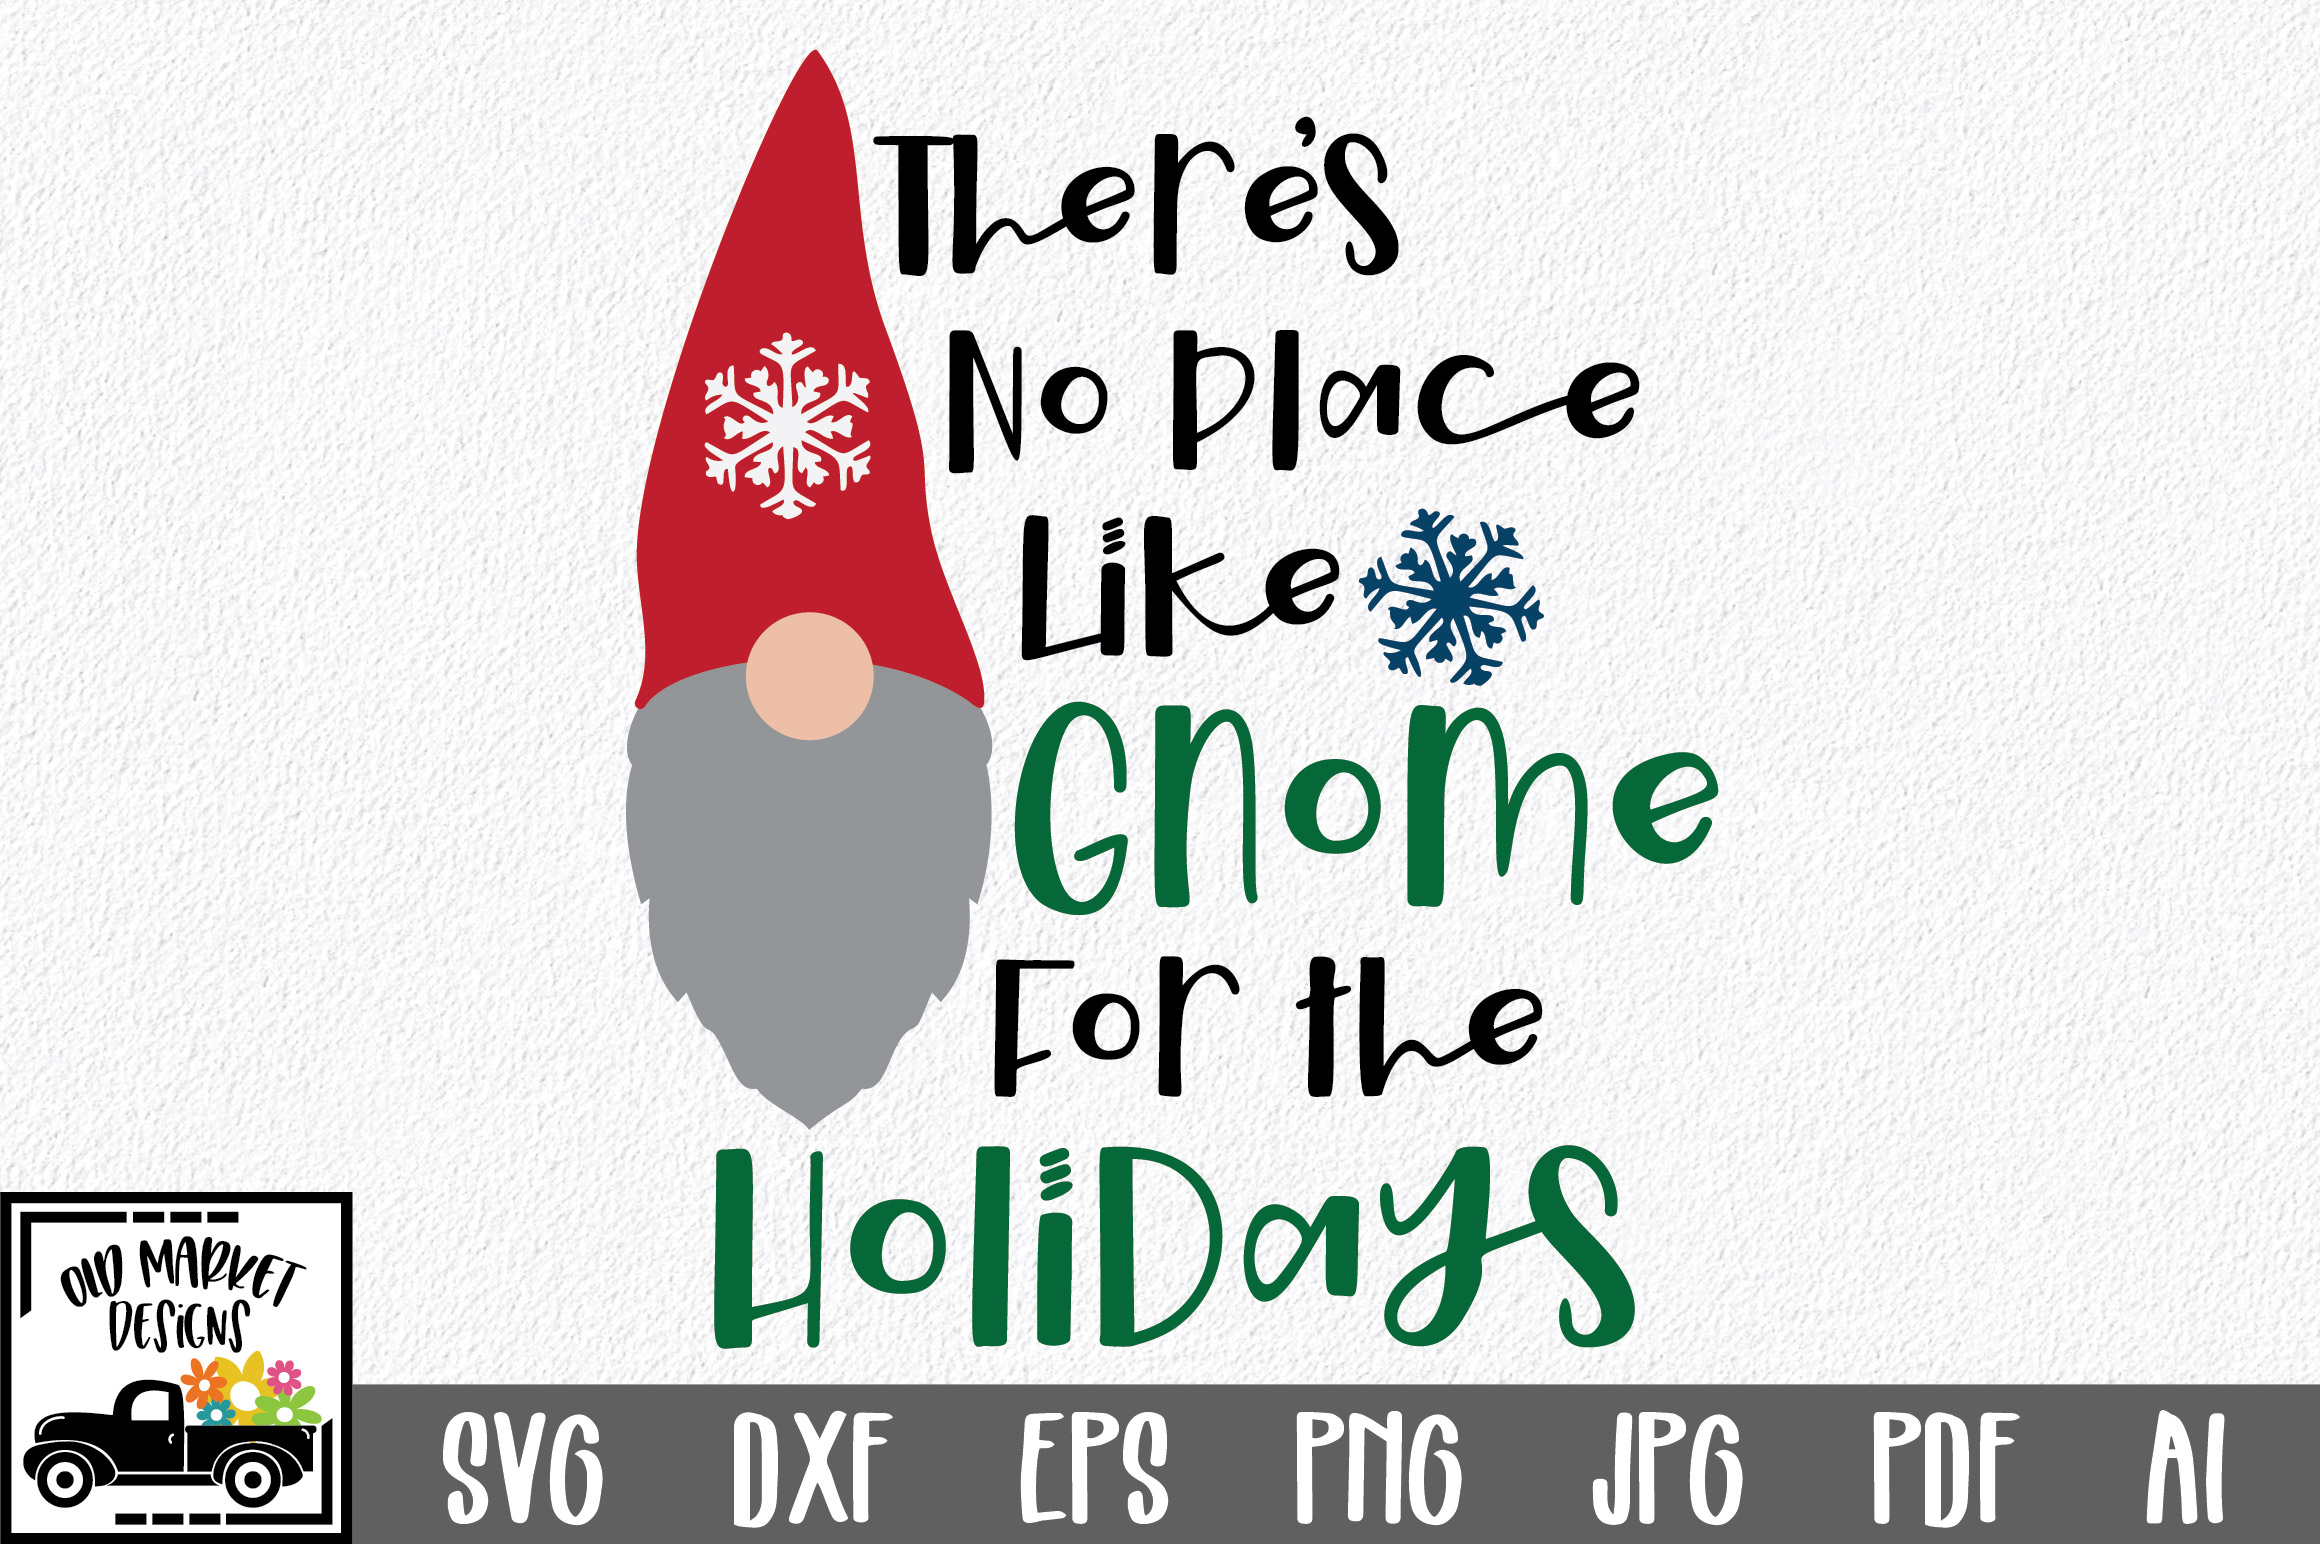 Download Free Gnome For The Holidays Svg Cut File Graphic By Oldmarketdesigns Creative Fabrica for Cricut Explore, Silhouette and other cutting machines.